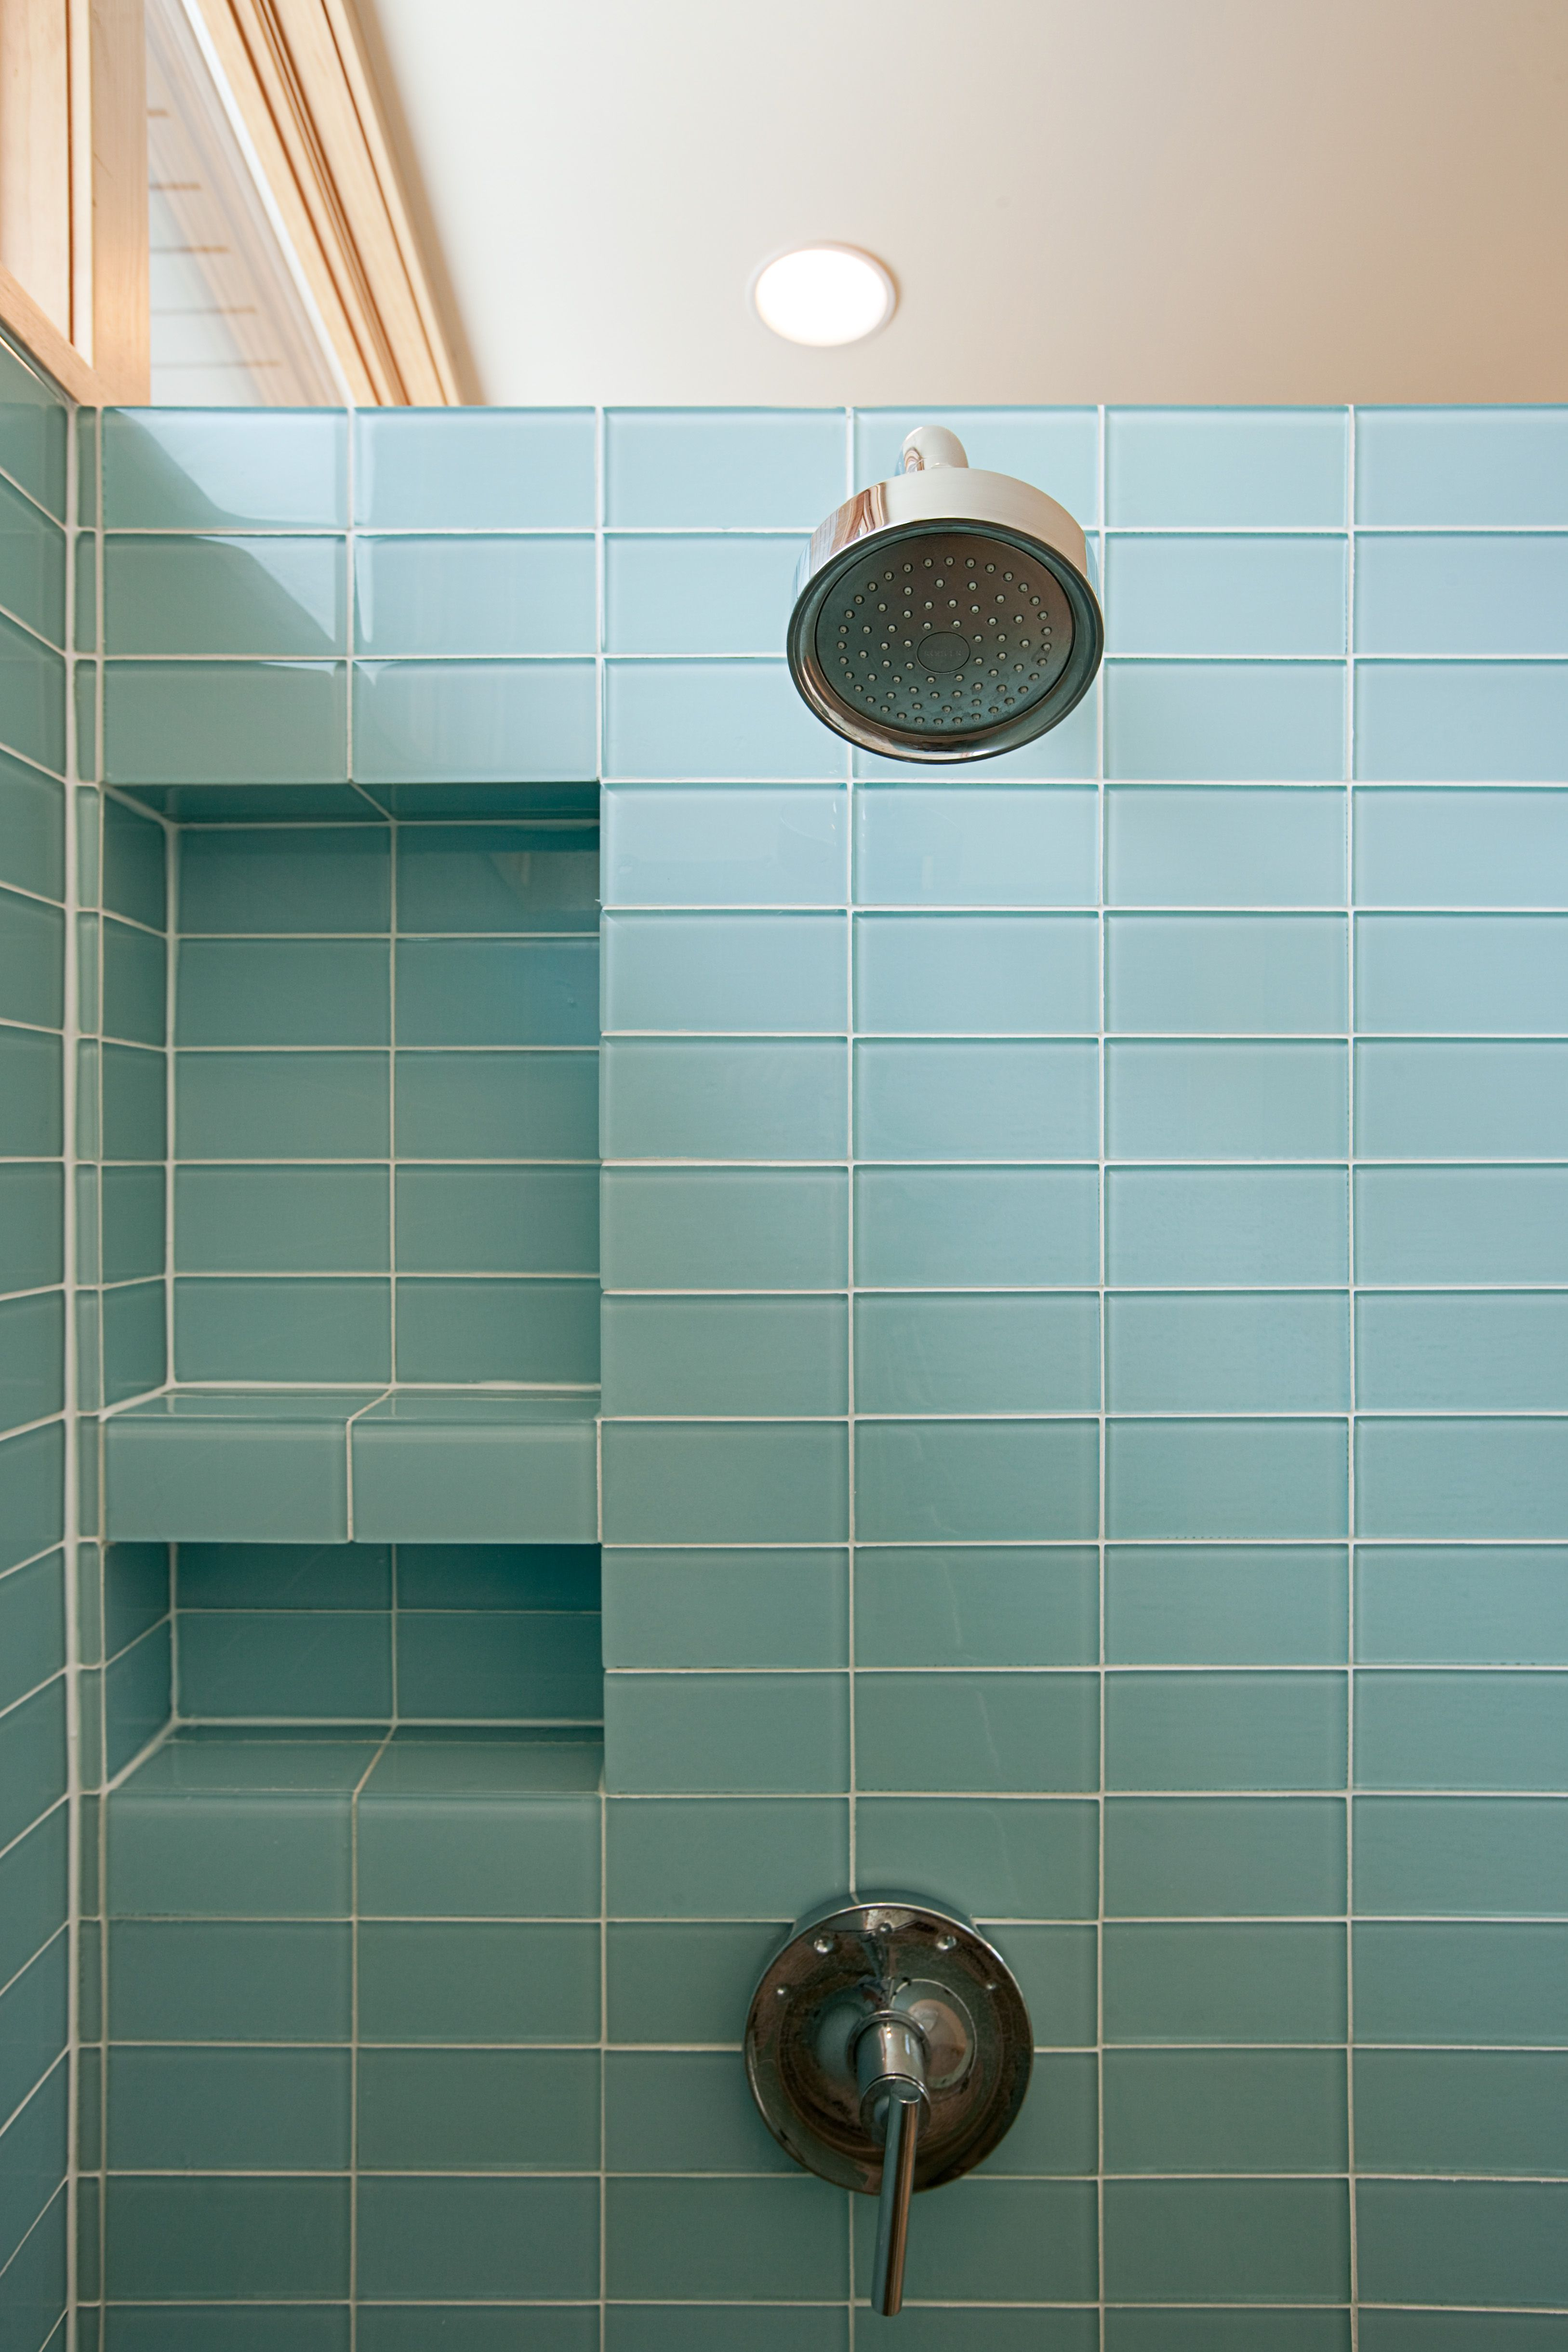 Bathroom Inspiration Contemporary Shower Niche Recessed Shelves - 3 knob shower faucettile designs for walk in showers